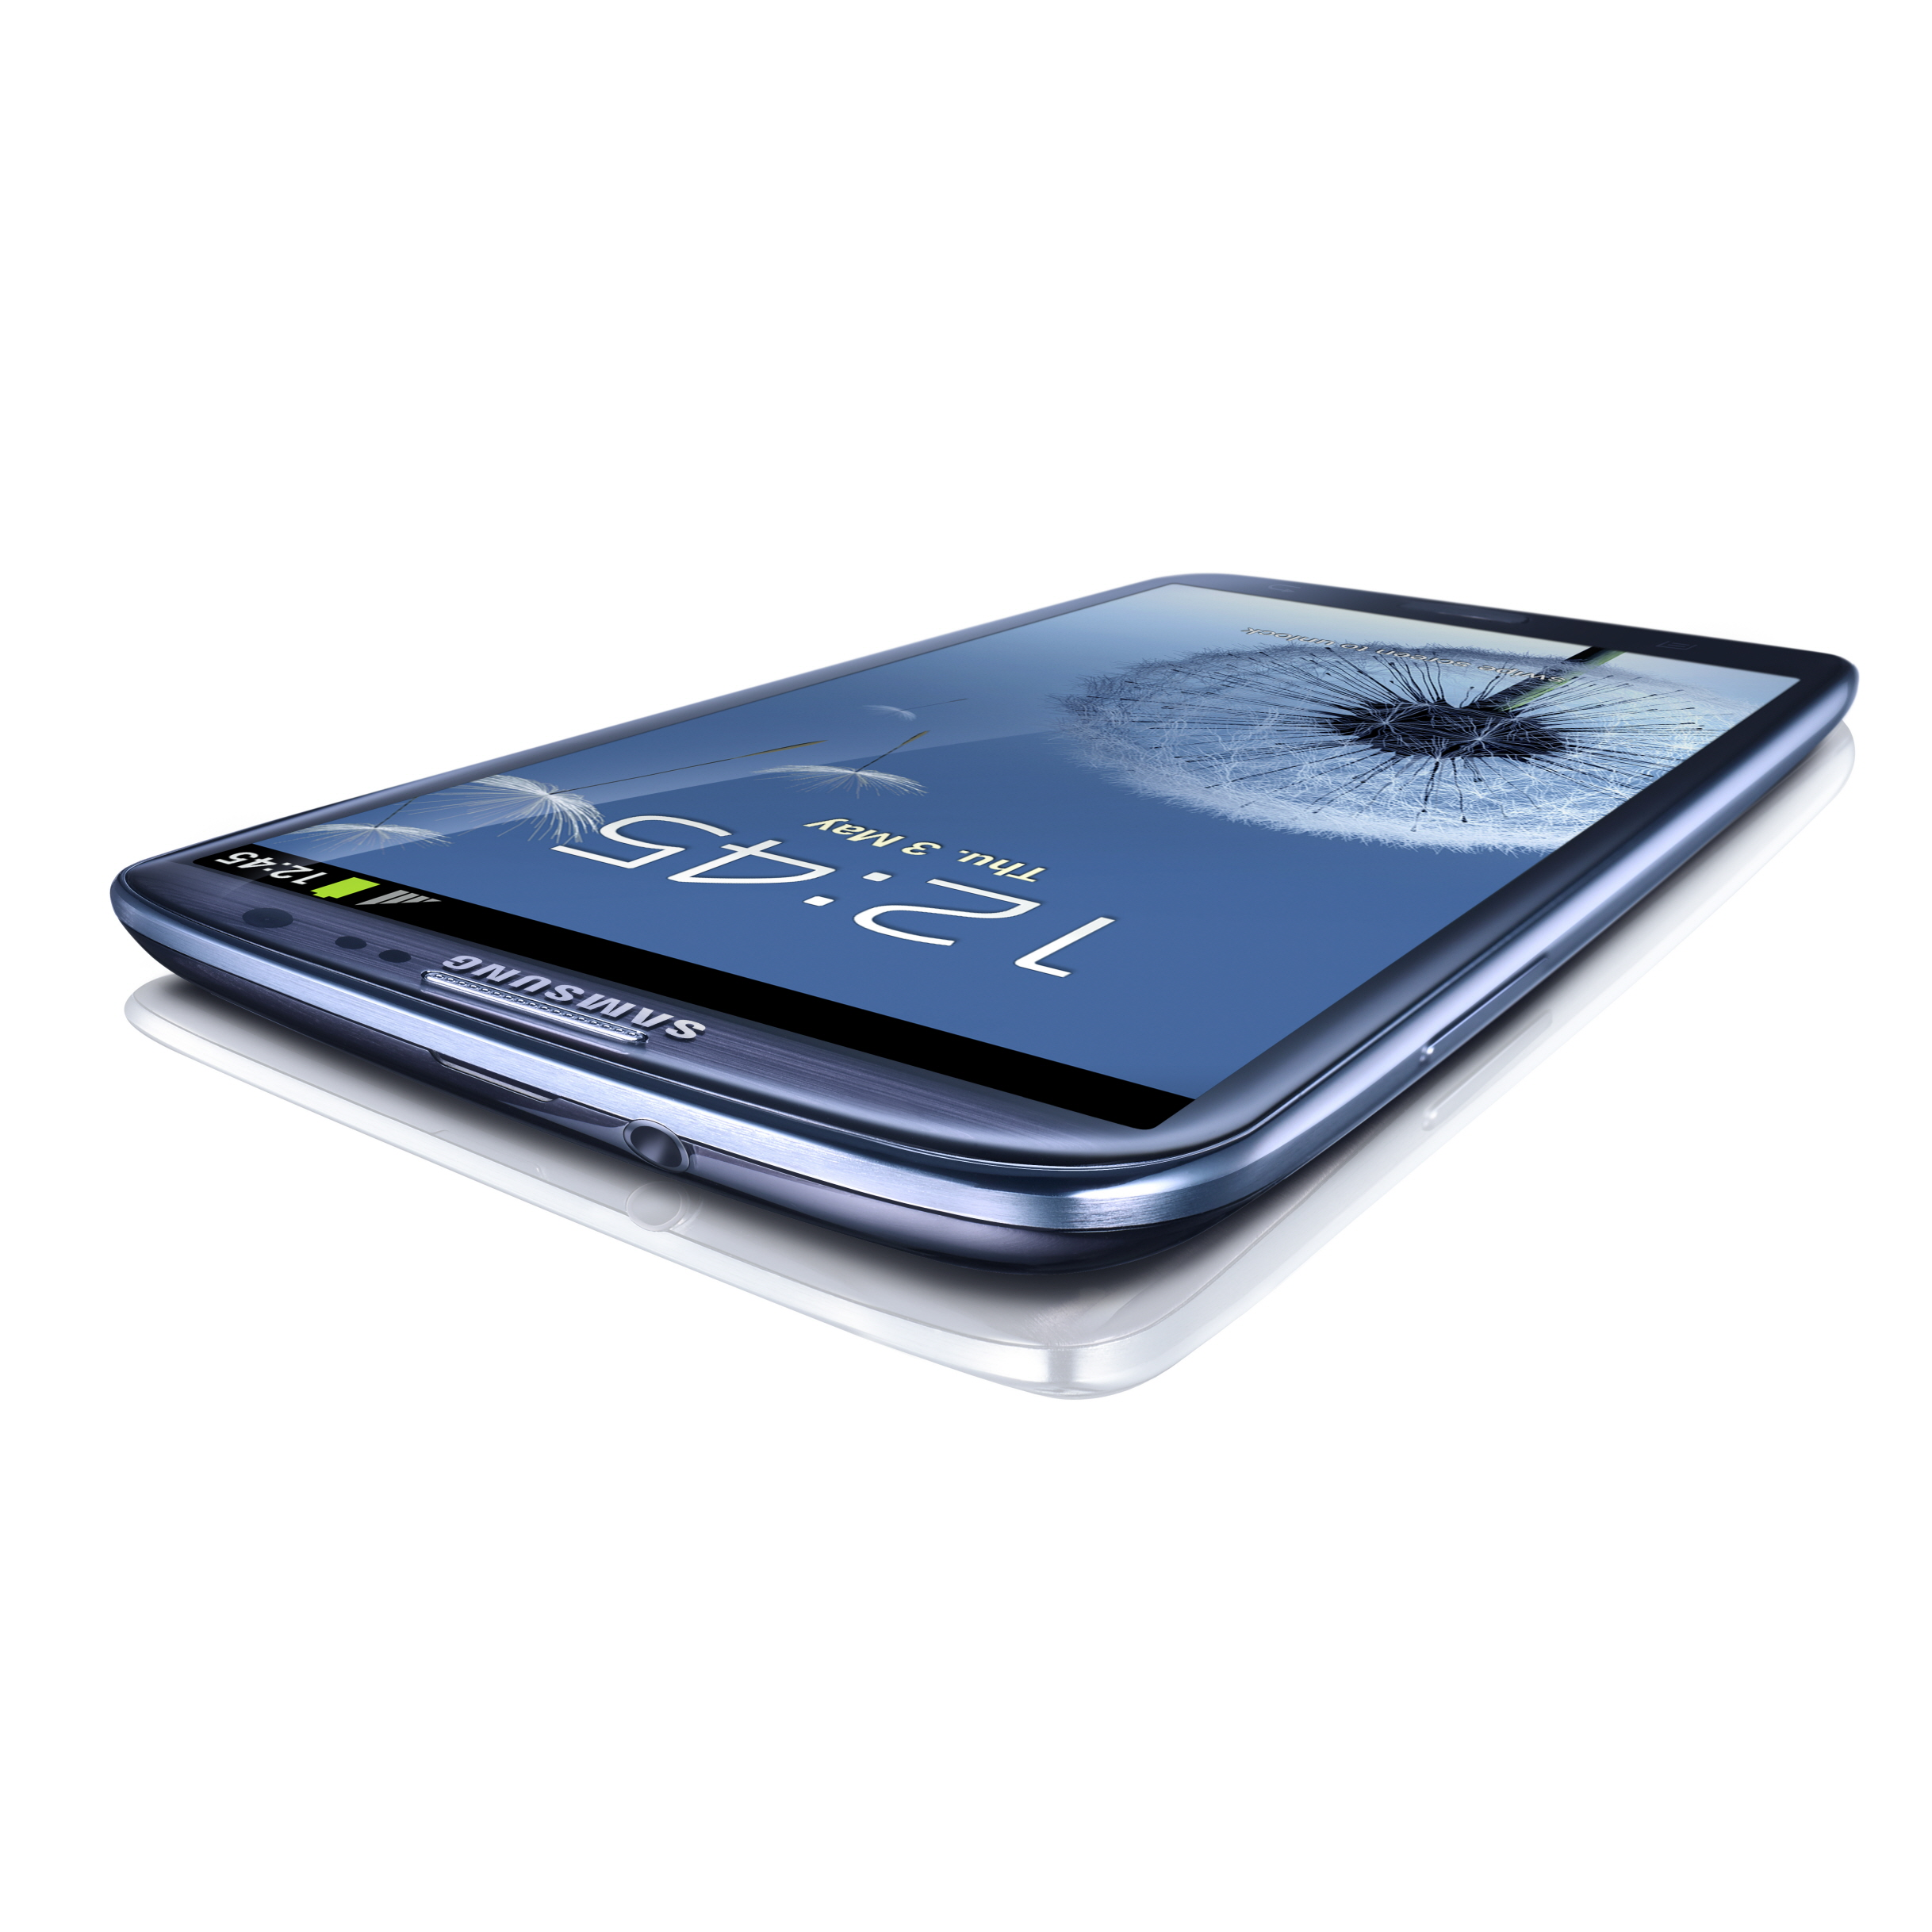 "The Samsung Galaxy S III Revealed: 4.8"" HD SuperAMOLED, Exynos 4 Quad"